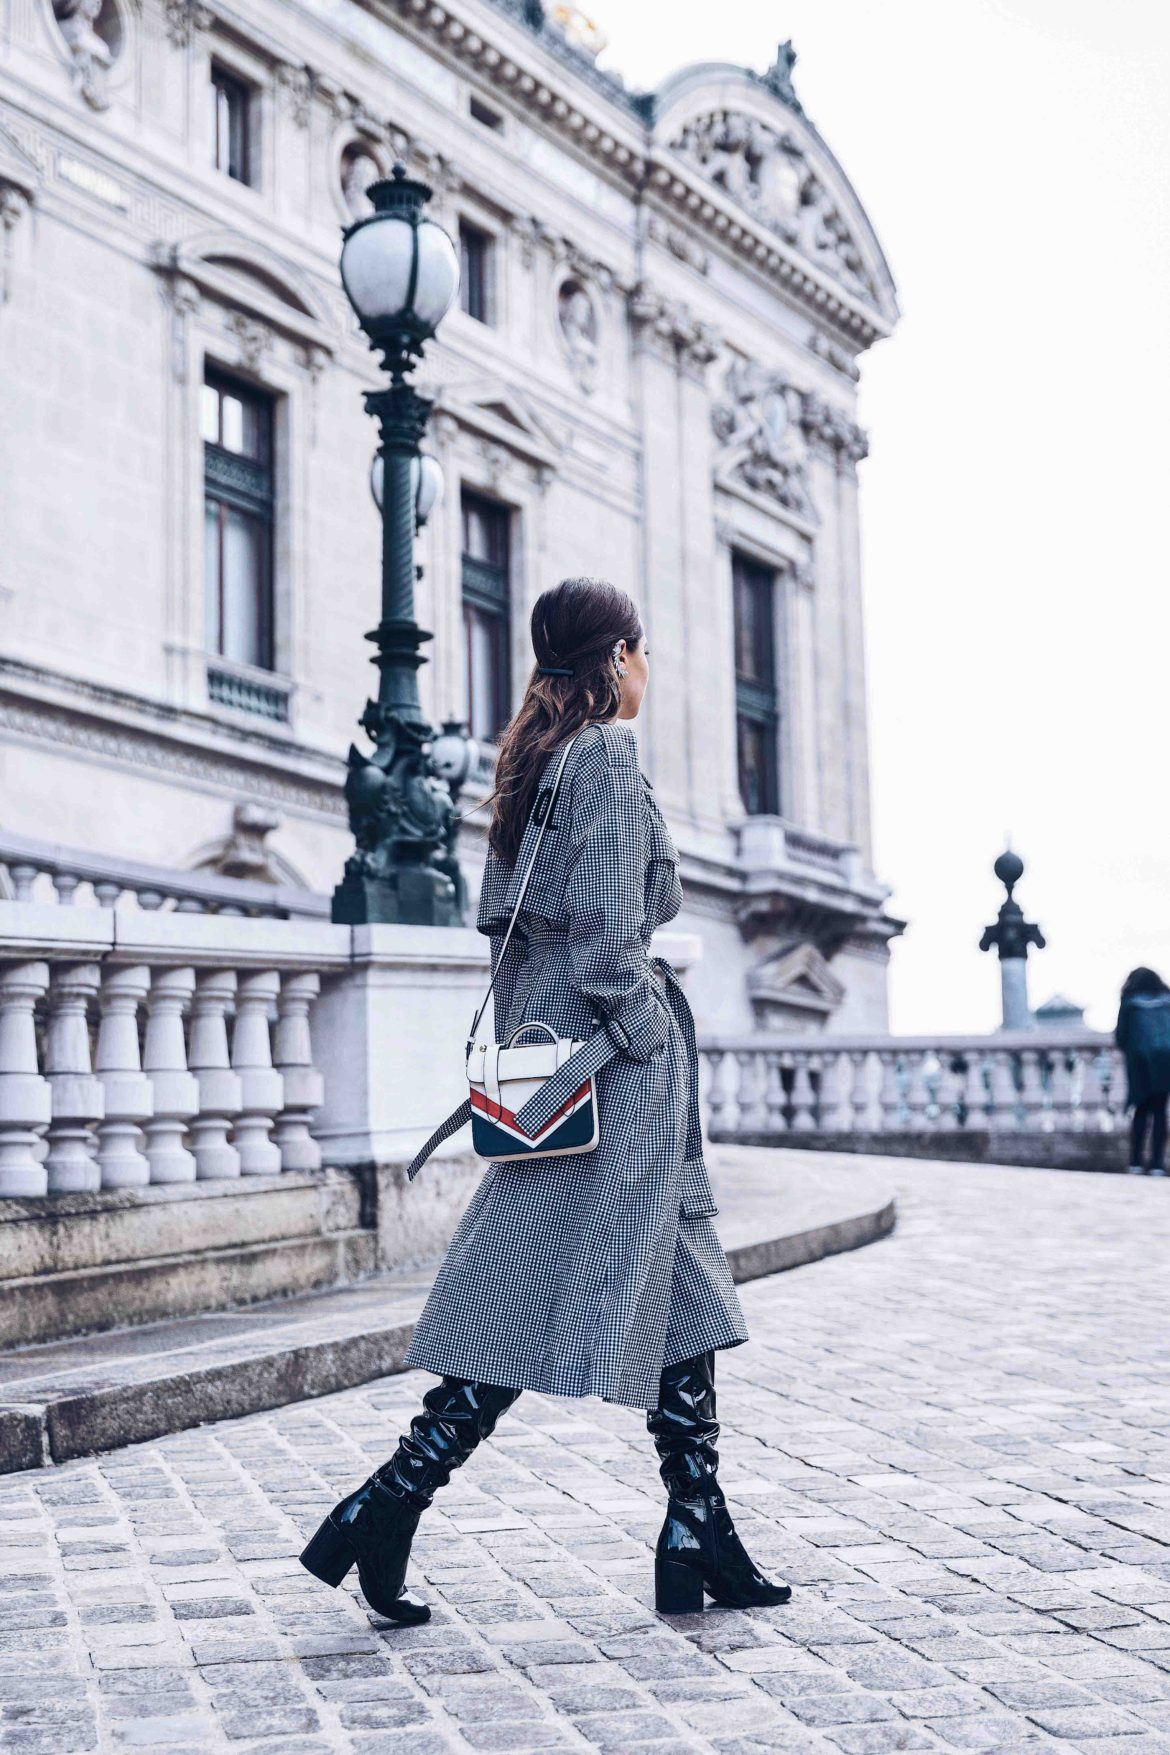 Spring Trench Coat - Gingham Trench Coat - Long Trench coat - Trench coat for women 2018 - Paris - Fashion Blogger Julia Comil styling the long trench coat in Paris - Bag: Strathberry - Mo&Co cotton trench coat